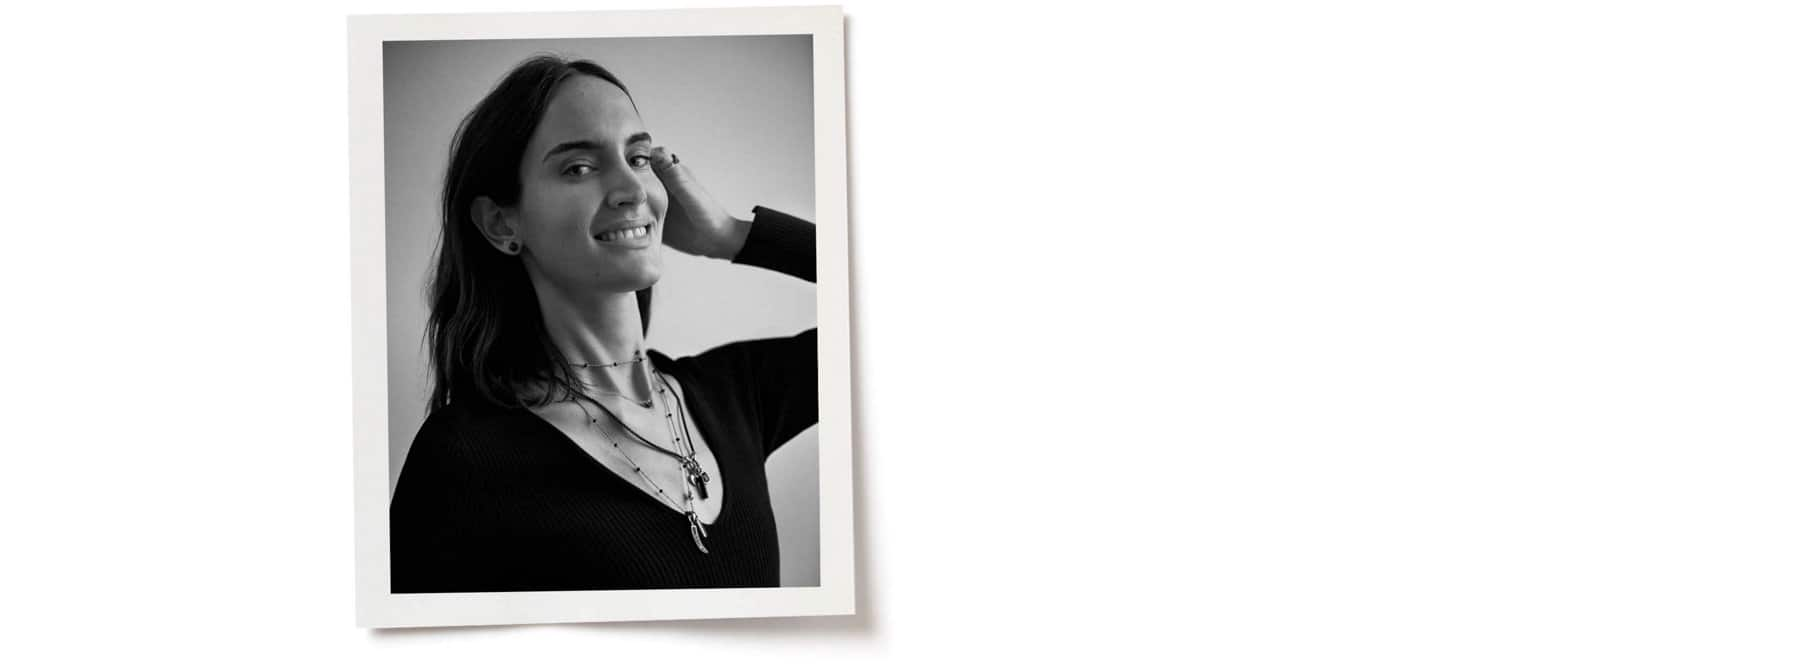 A black-and-white photo shows Jane with one hand behind her ear. She's wearing David Yurman jewelry, including various necklaces layered over each other.